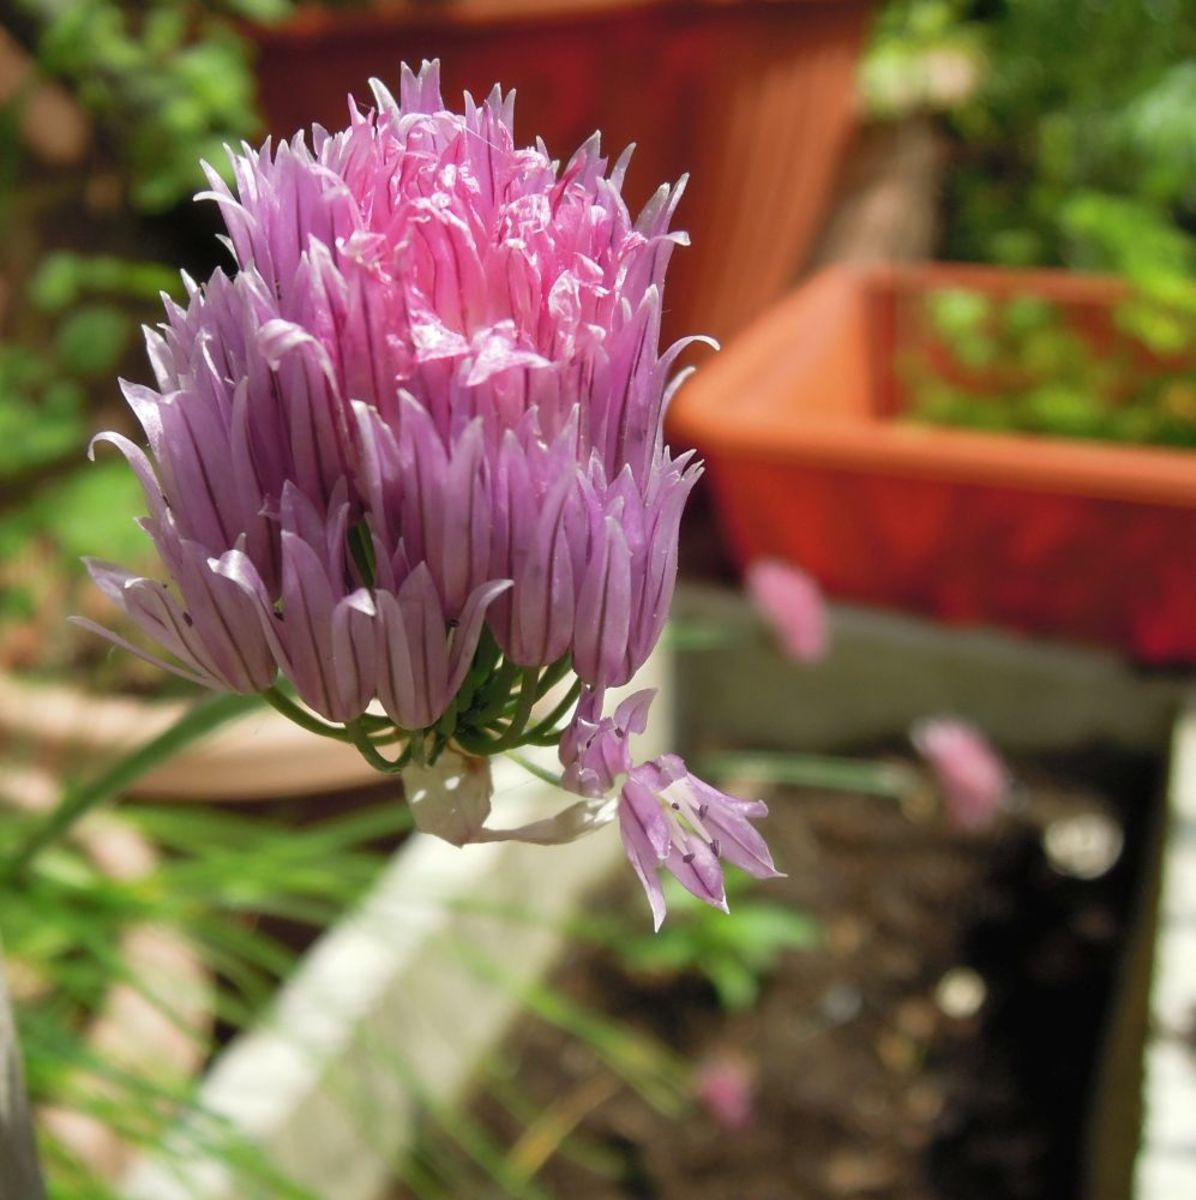 Many everyday herbs hav eexcellent magical properties. (Chive flower)